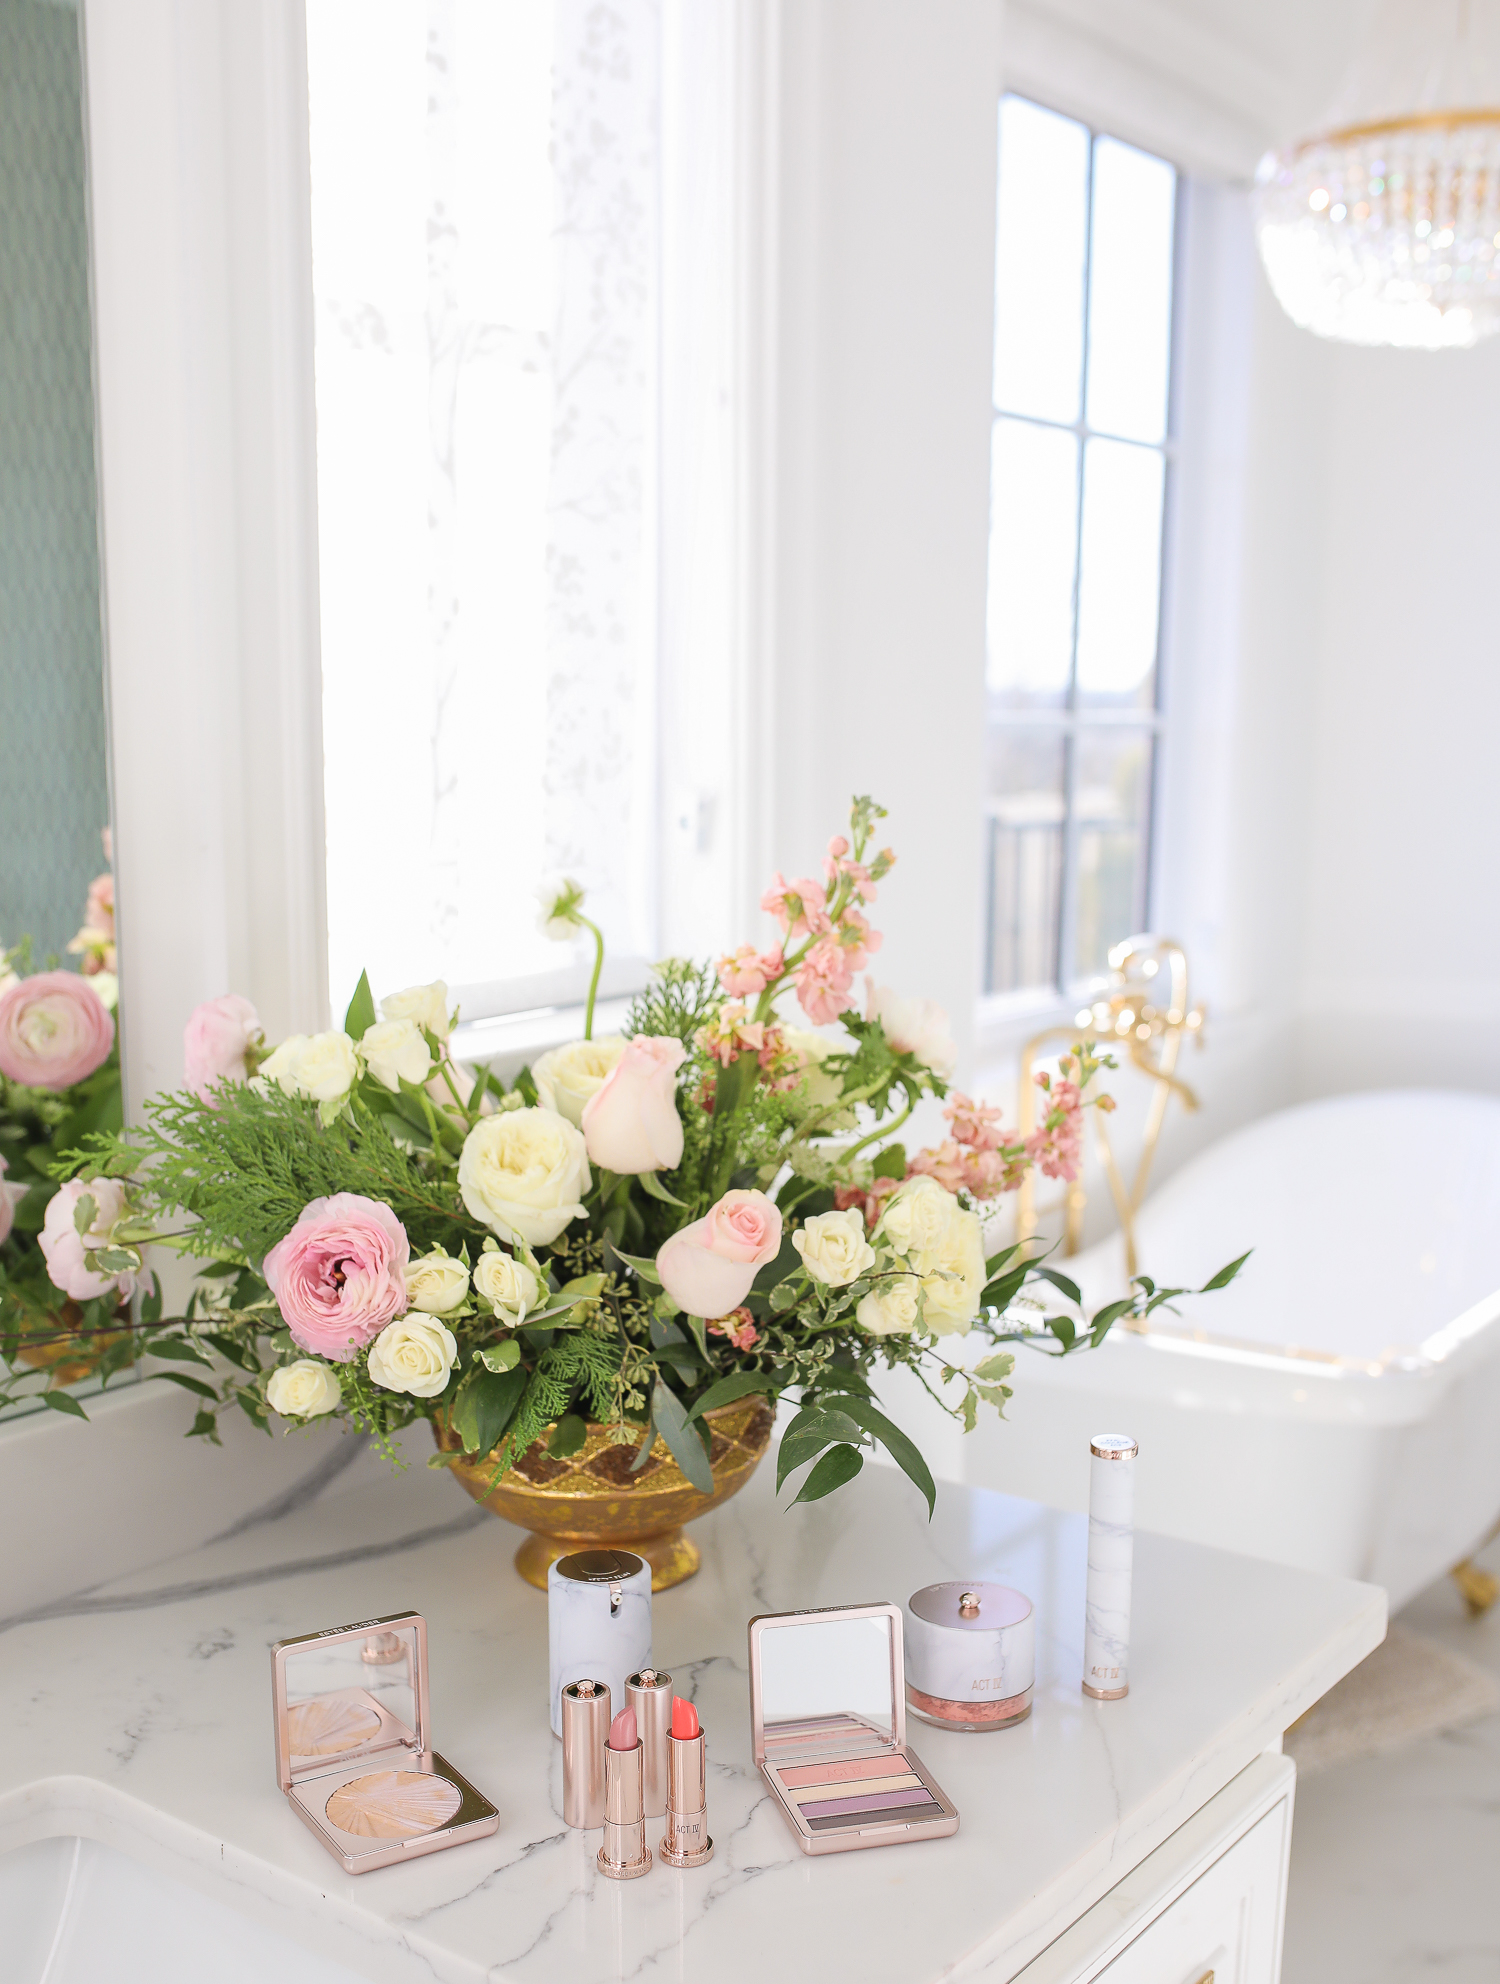 Estee Lauder Makeup by popular US beauty blog, The Sweetest Thing: image of various Estee Lauder Act IV makeup products on a bathroom counter next to a vase of flowers.